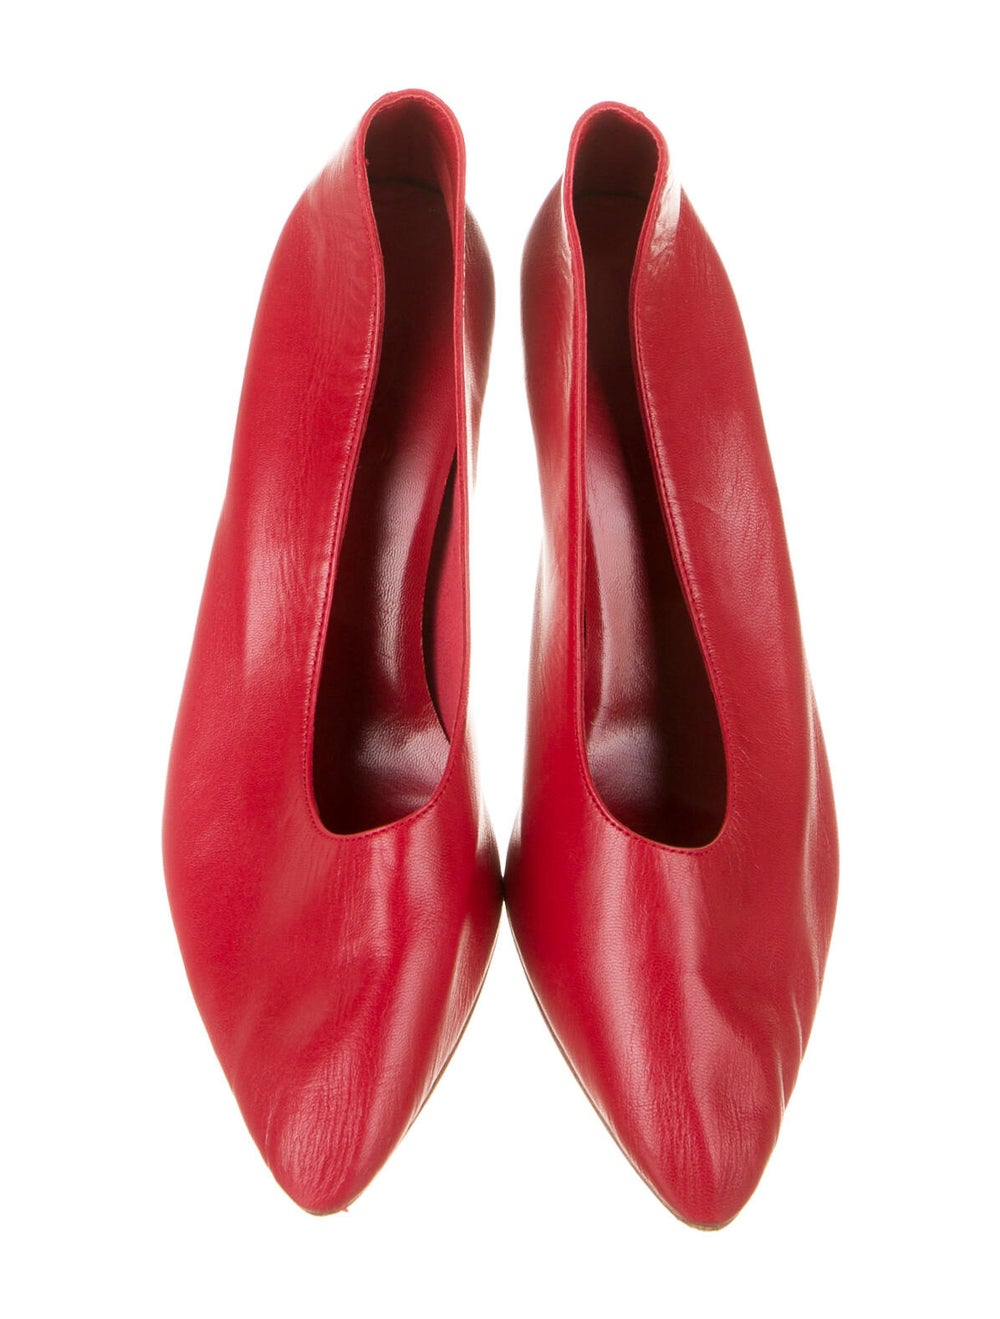 Martiniano Party Leather Pumps Red - image 3